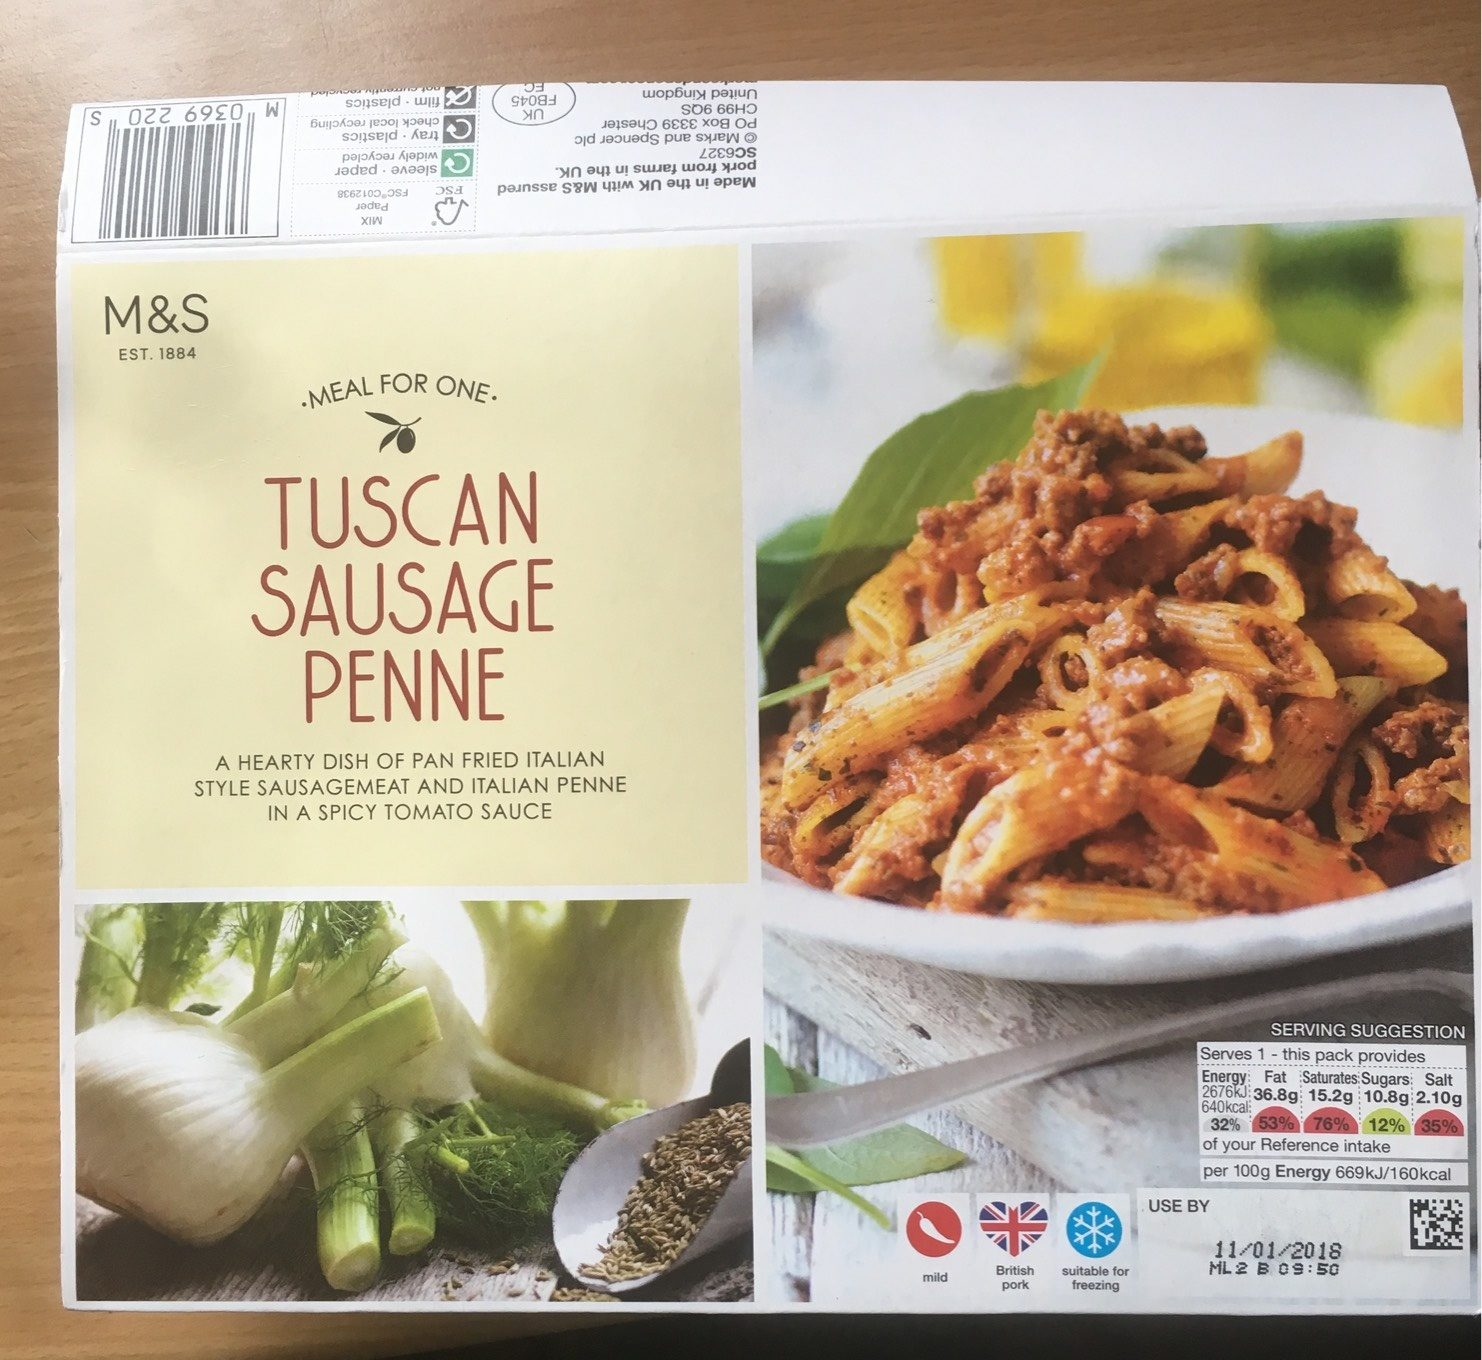 Tuscan sausage penne - Product